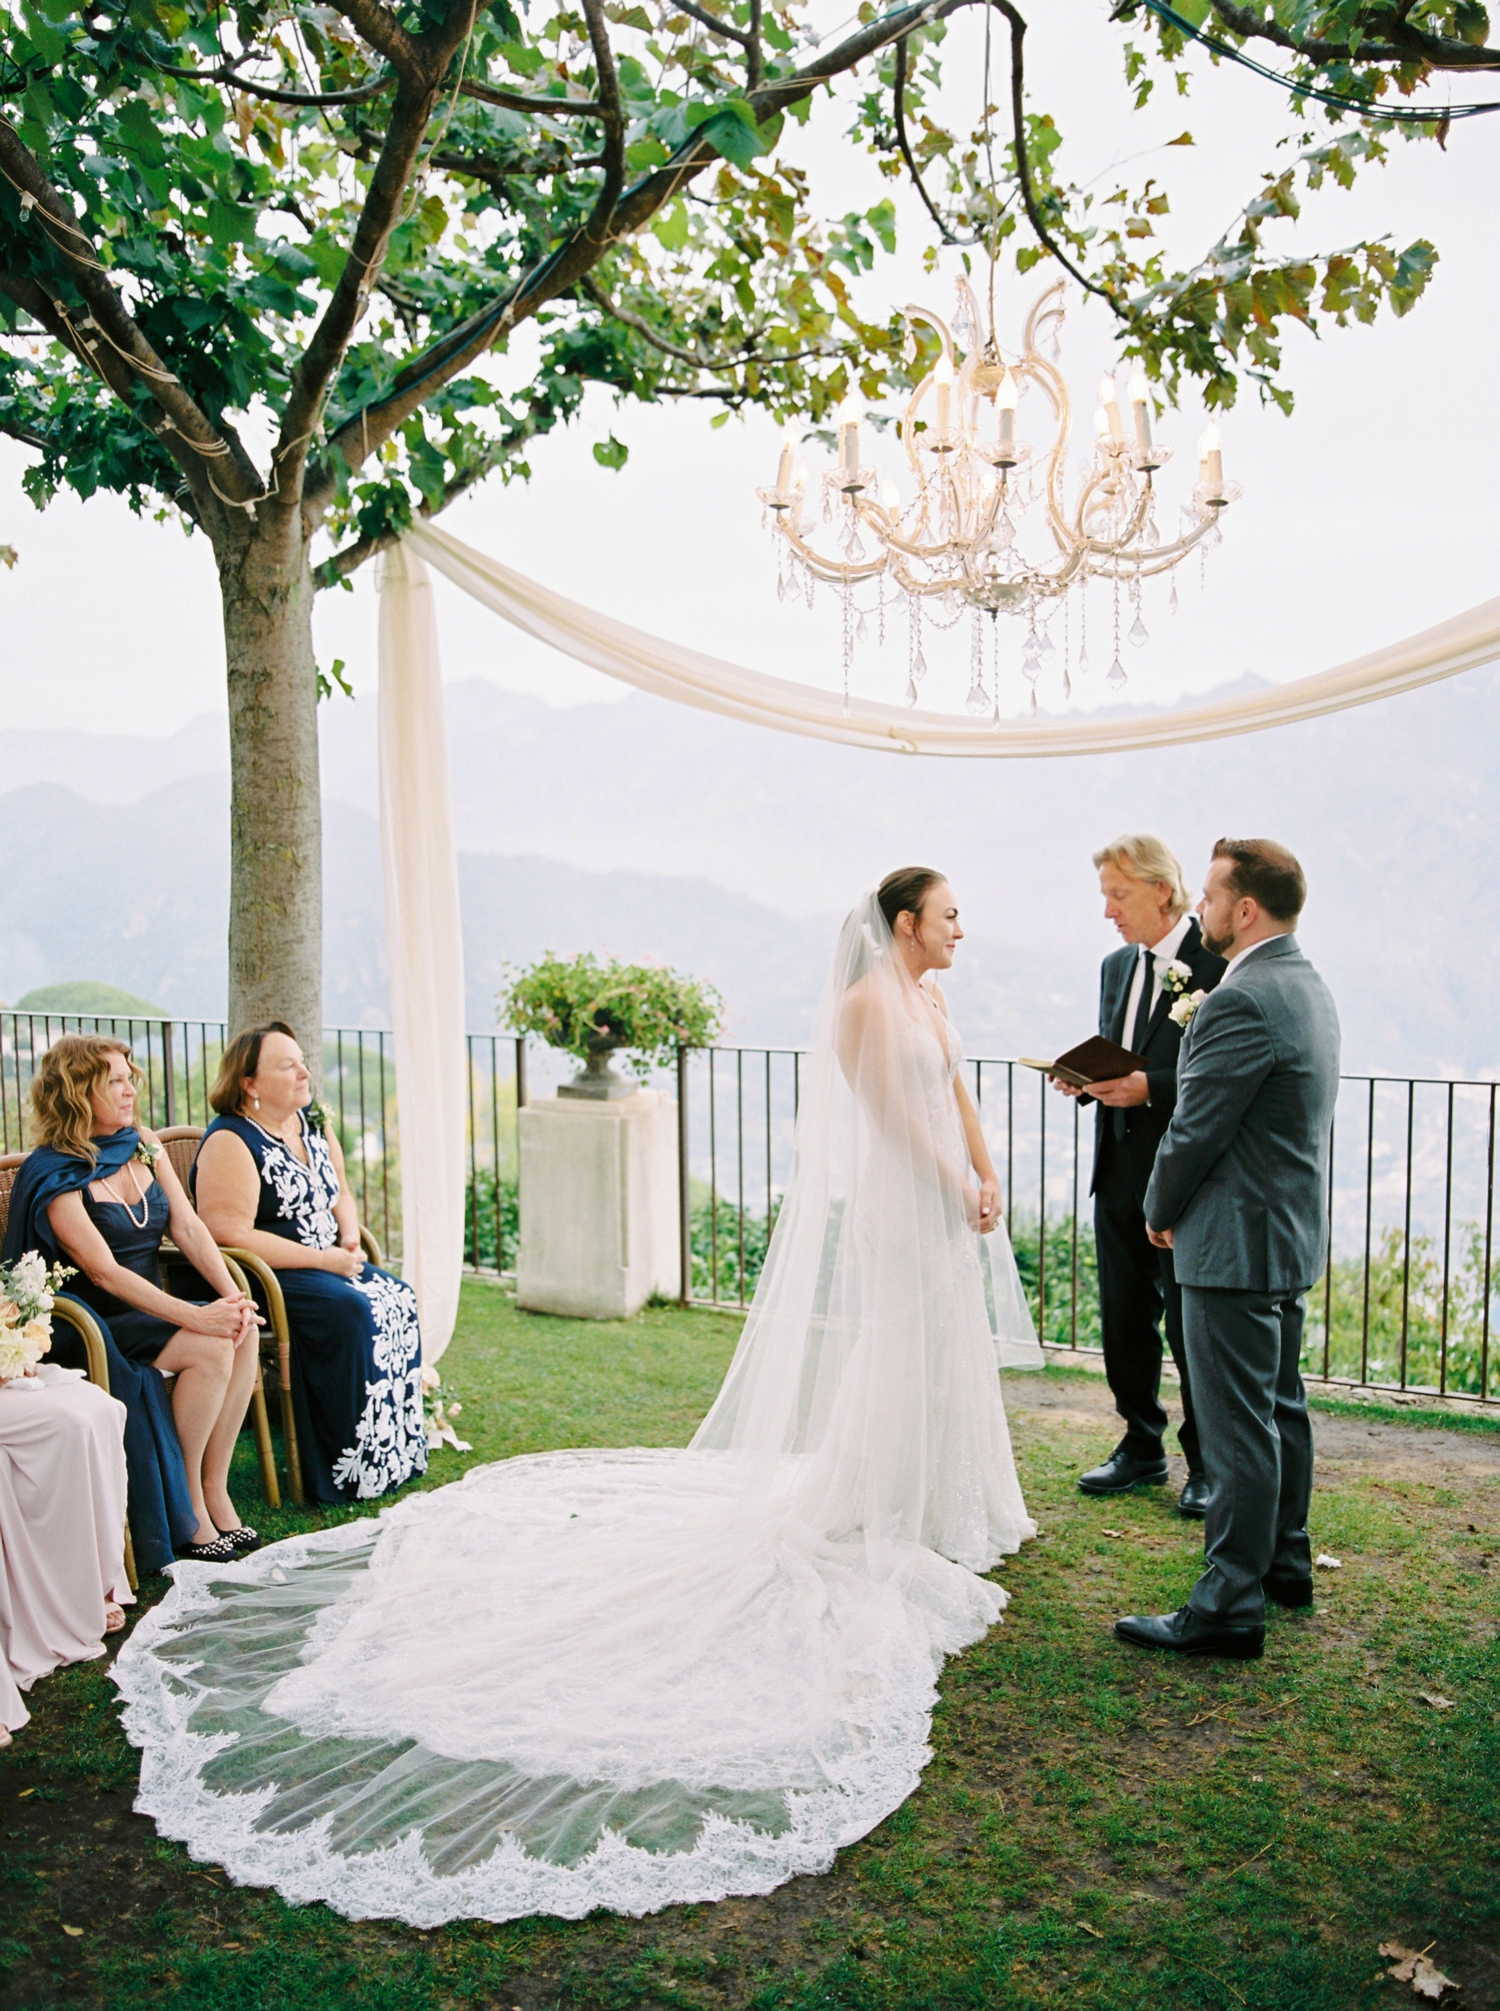 Ravello Italy Amafli Coast destination wedding photographers | english speaking wedding photographer in Italy | Justine Milton Photography | ceremony